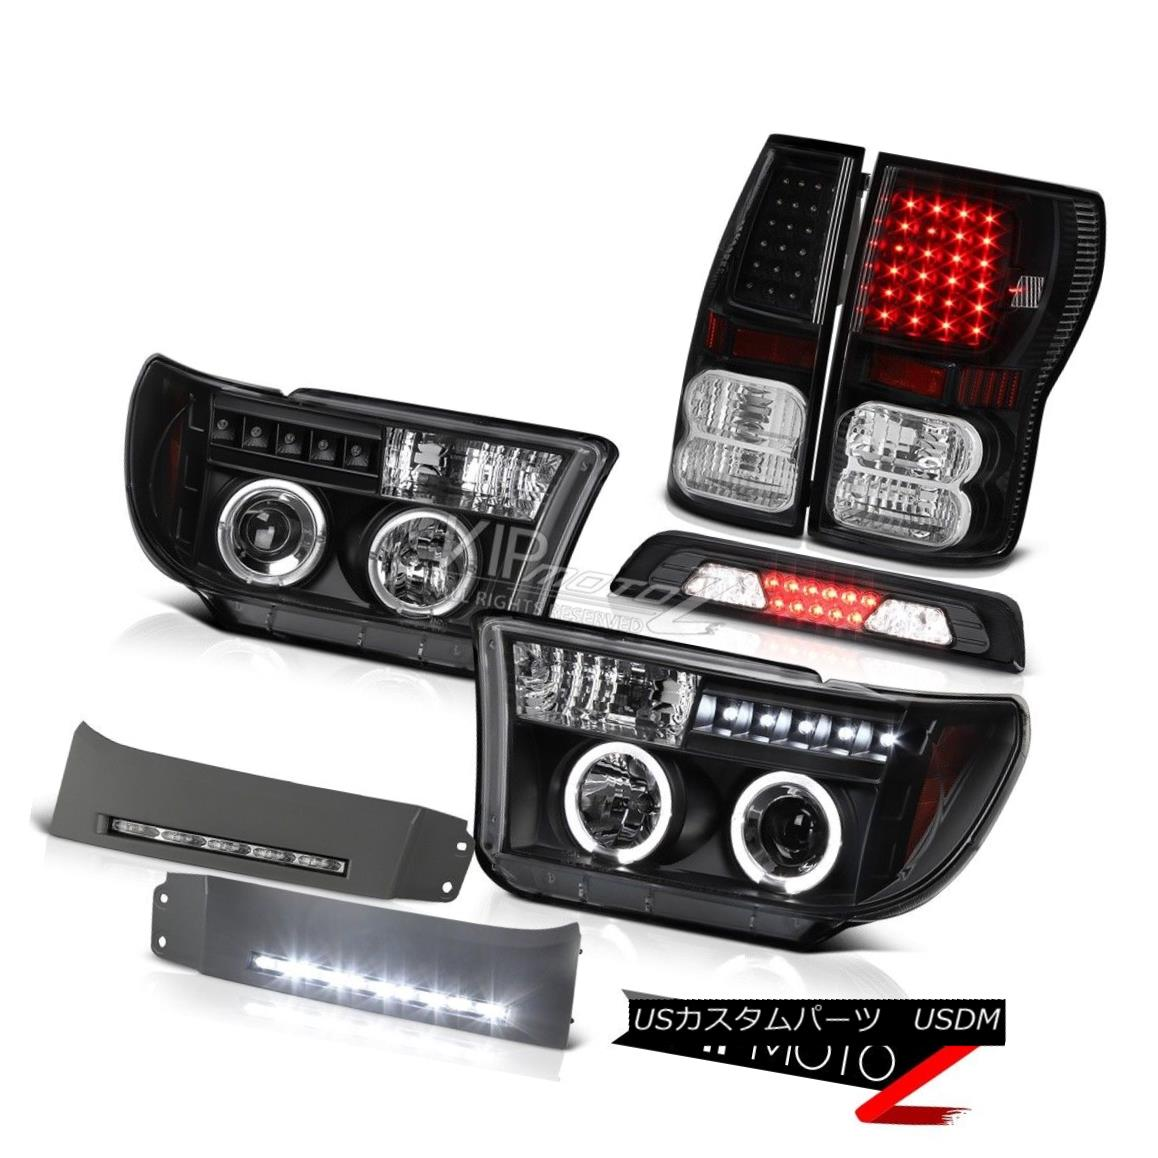 テールライト 2007-2013 Toyota Tundra Platinum Bumper DRL 3RD Brake Lamp Rear Lights Headlamps 2007-2013 Toyota Tundra PlatinumバンパーDRL 3RDブレーキランプリアライトヘッドランプ